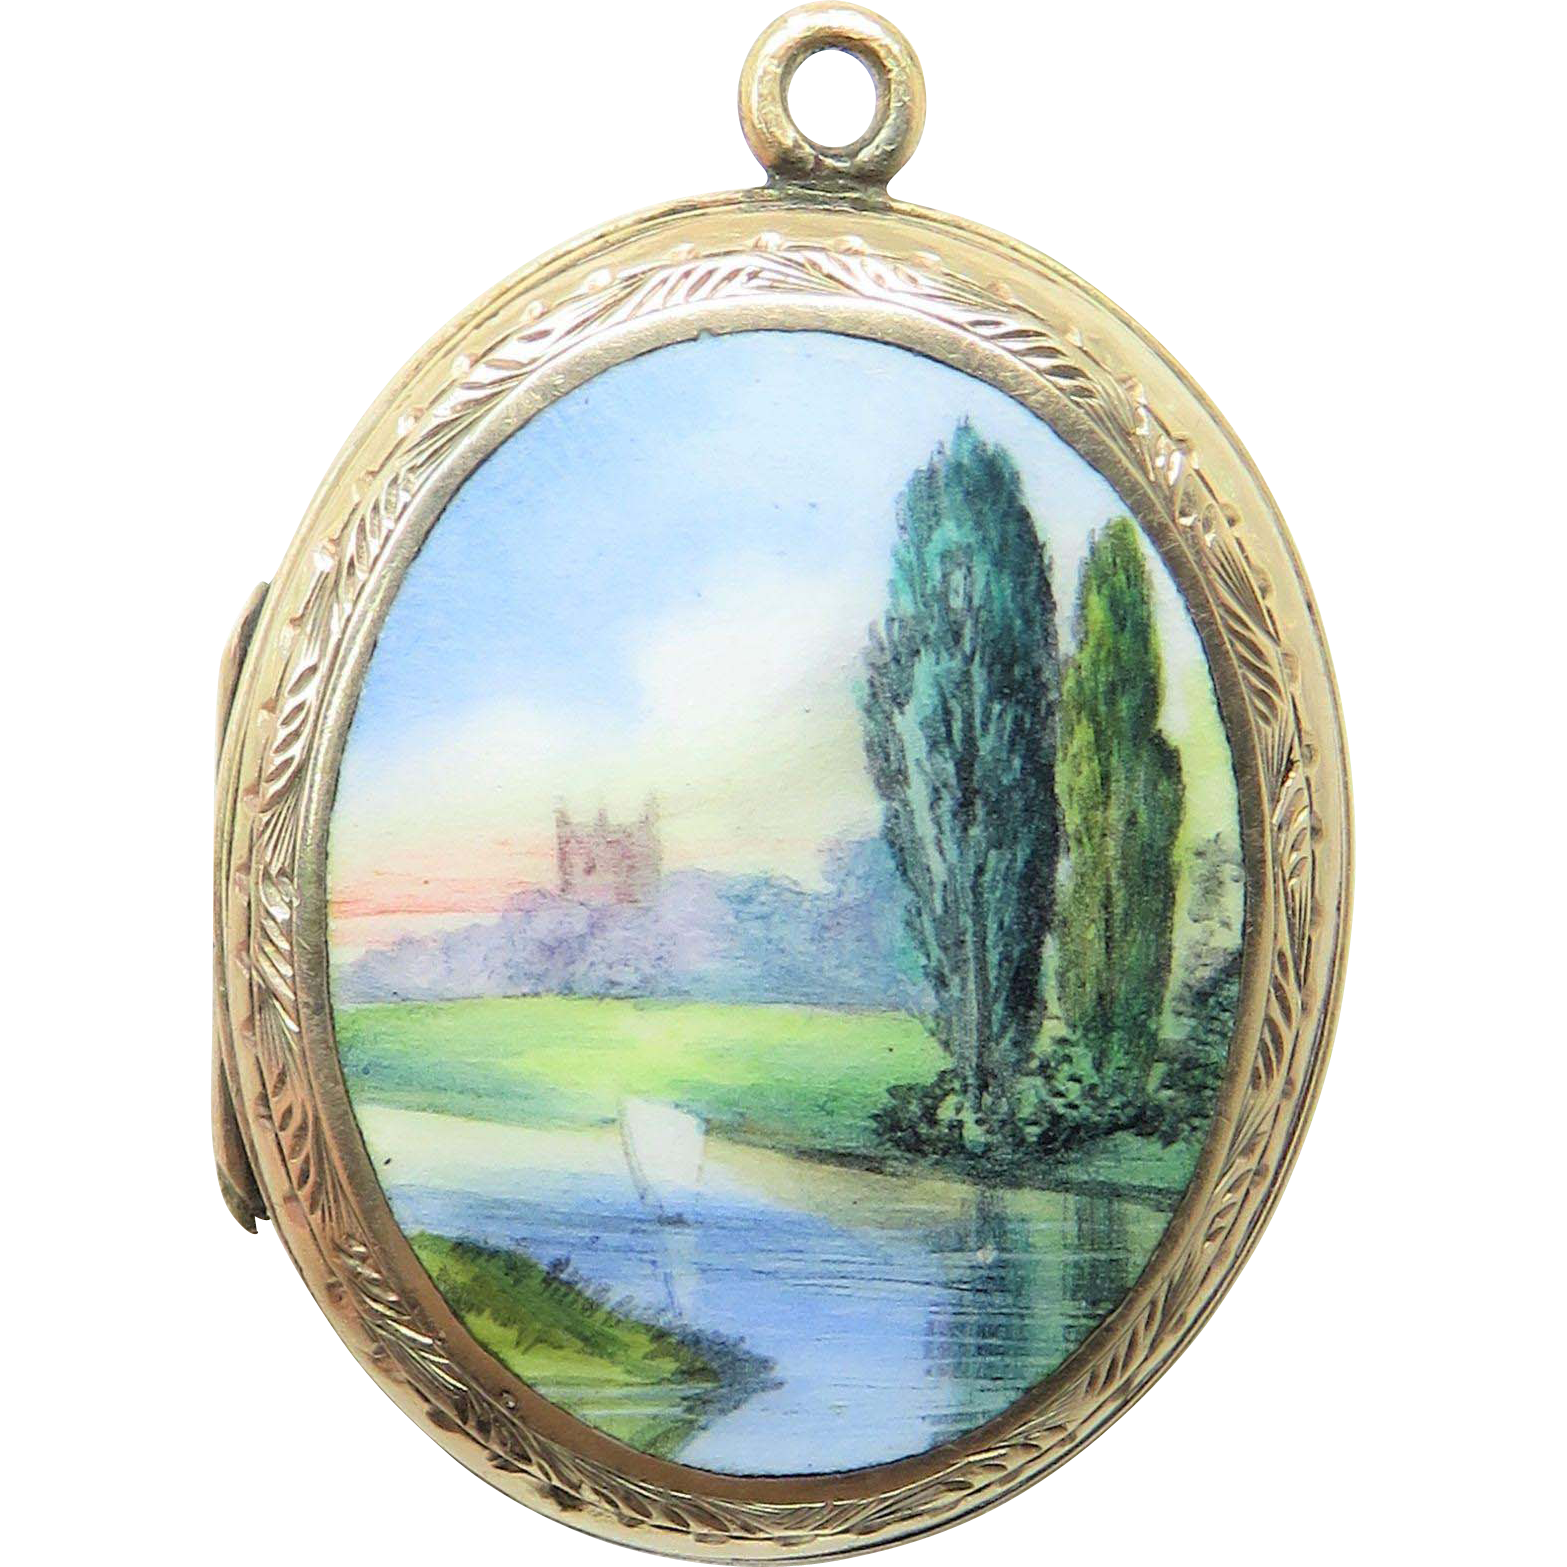 wrist iii locket by deviantart lockets art watch on pinkabsinthe